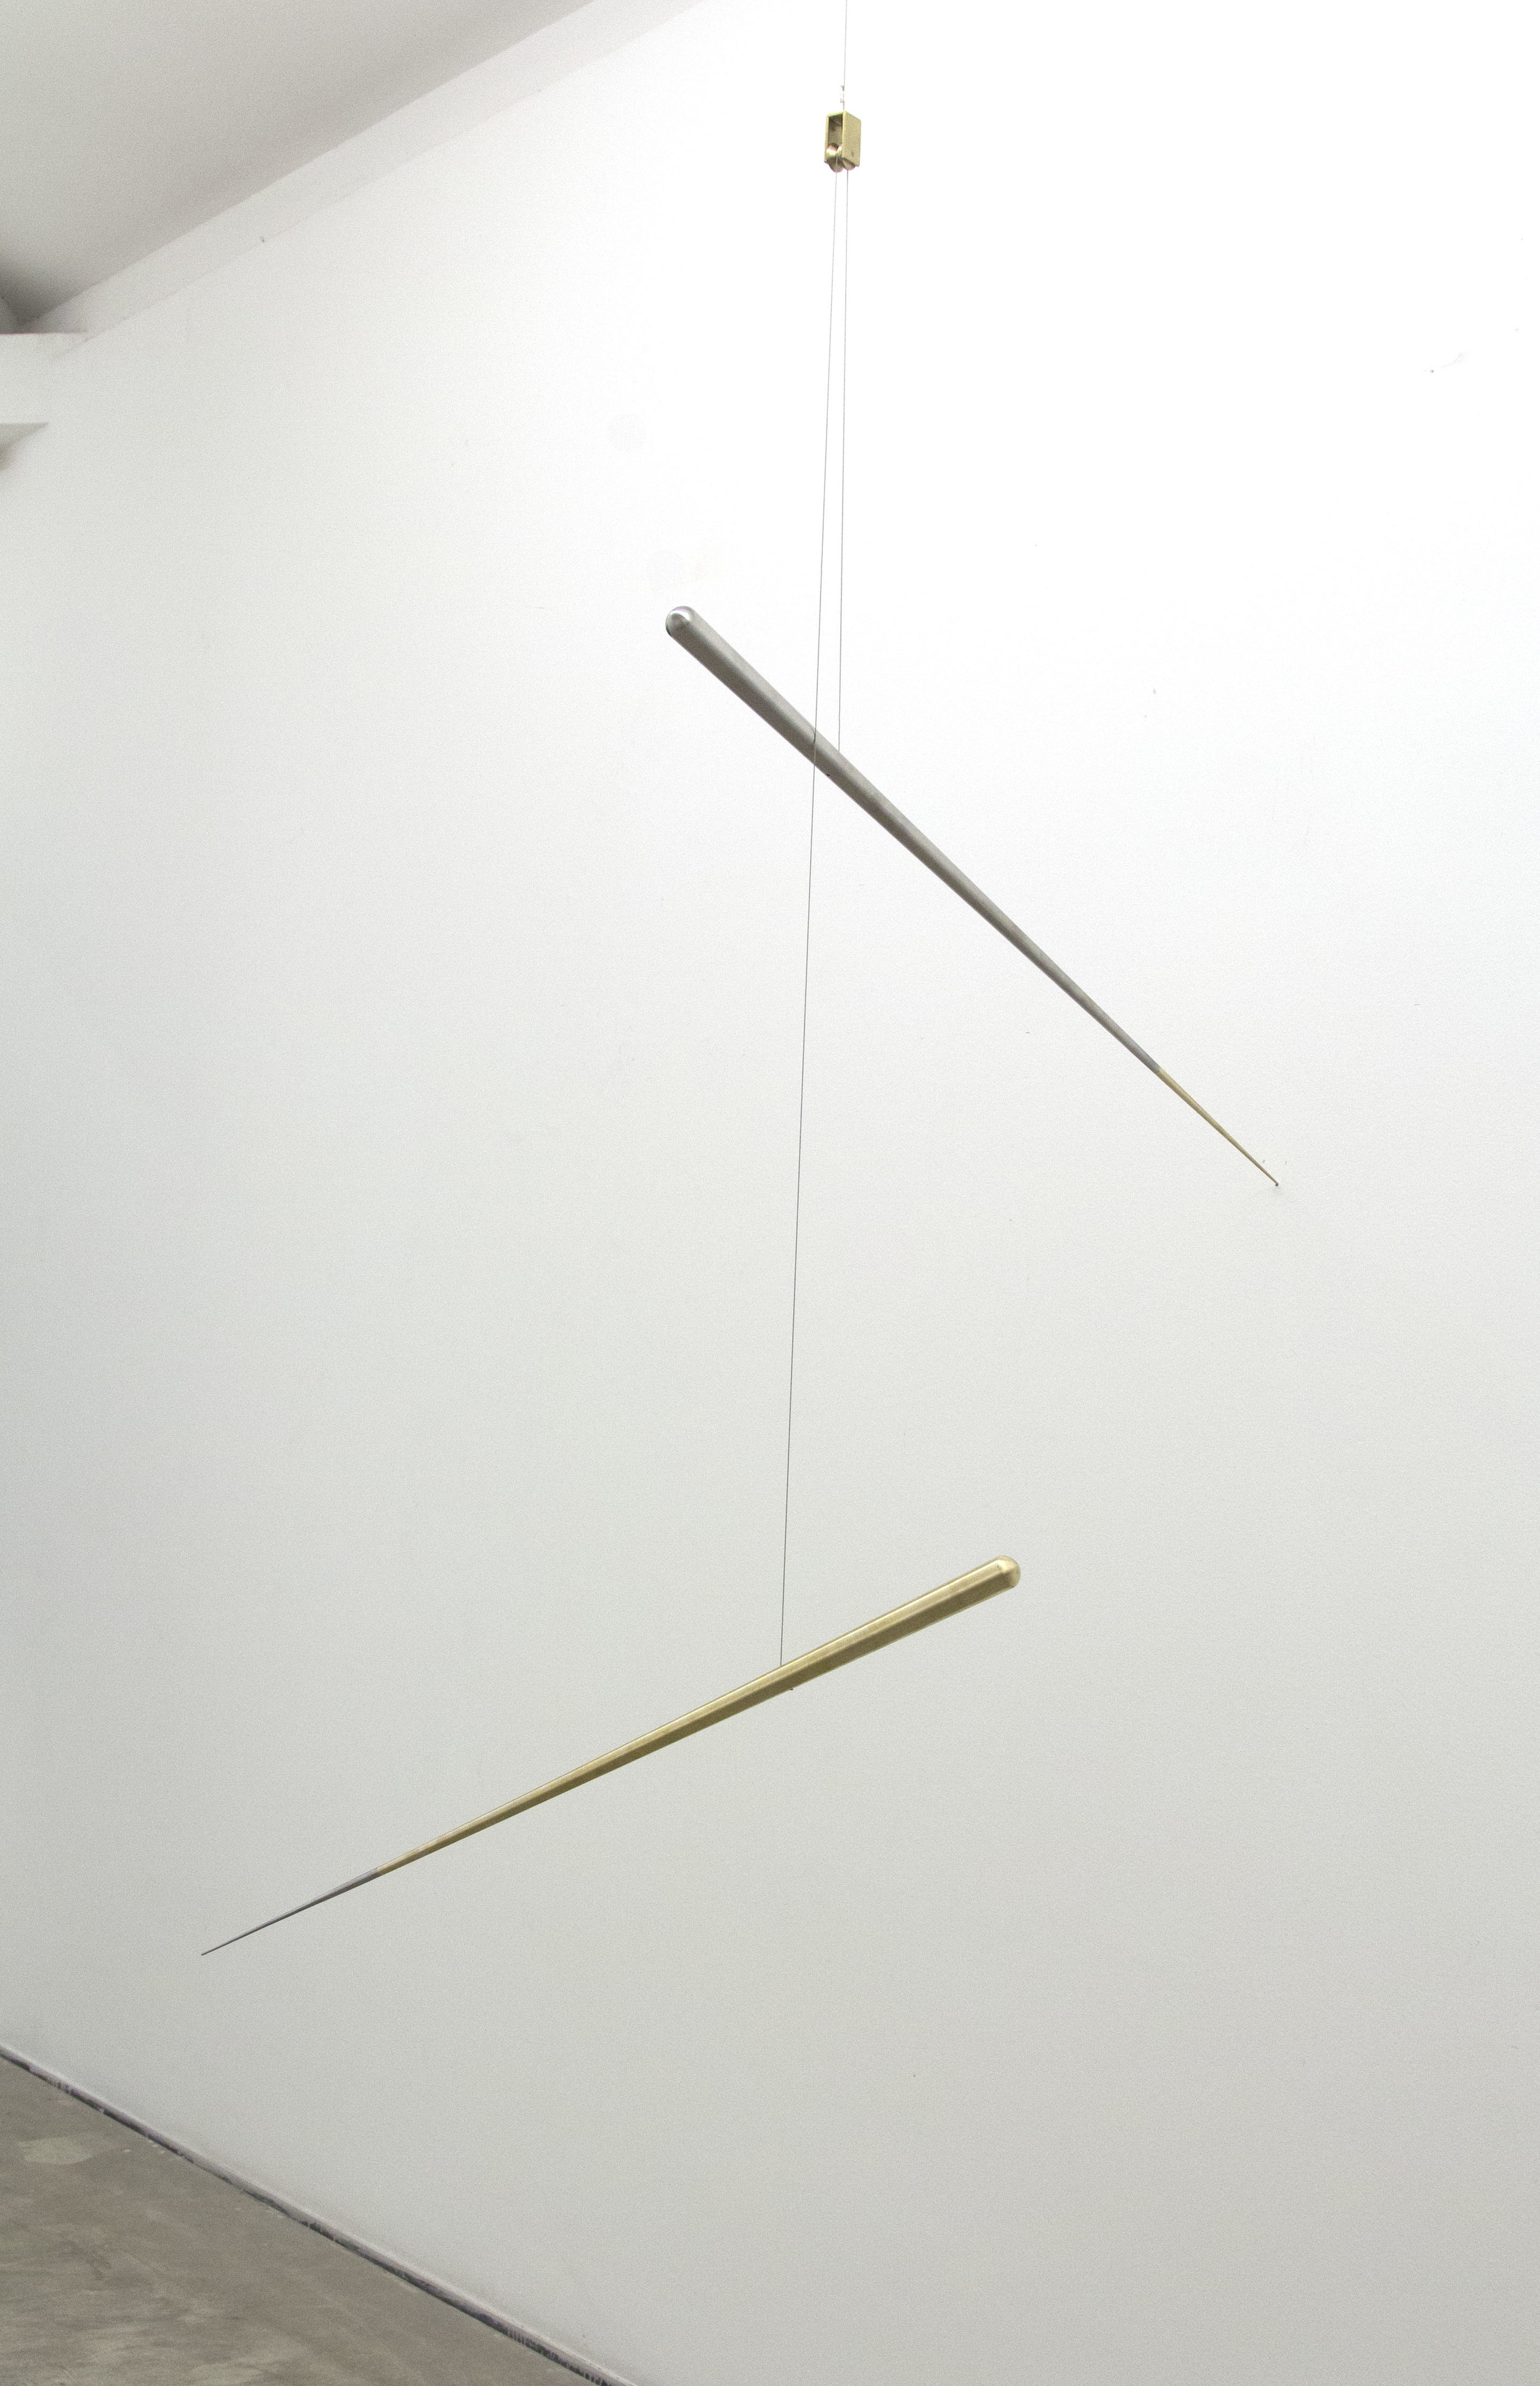 Artur Lescher  Tato , 2017 brass, stainless steel and steel cable 90 x Ø 2,5 cm (each) Edition of 5 plus 2 AP's